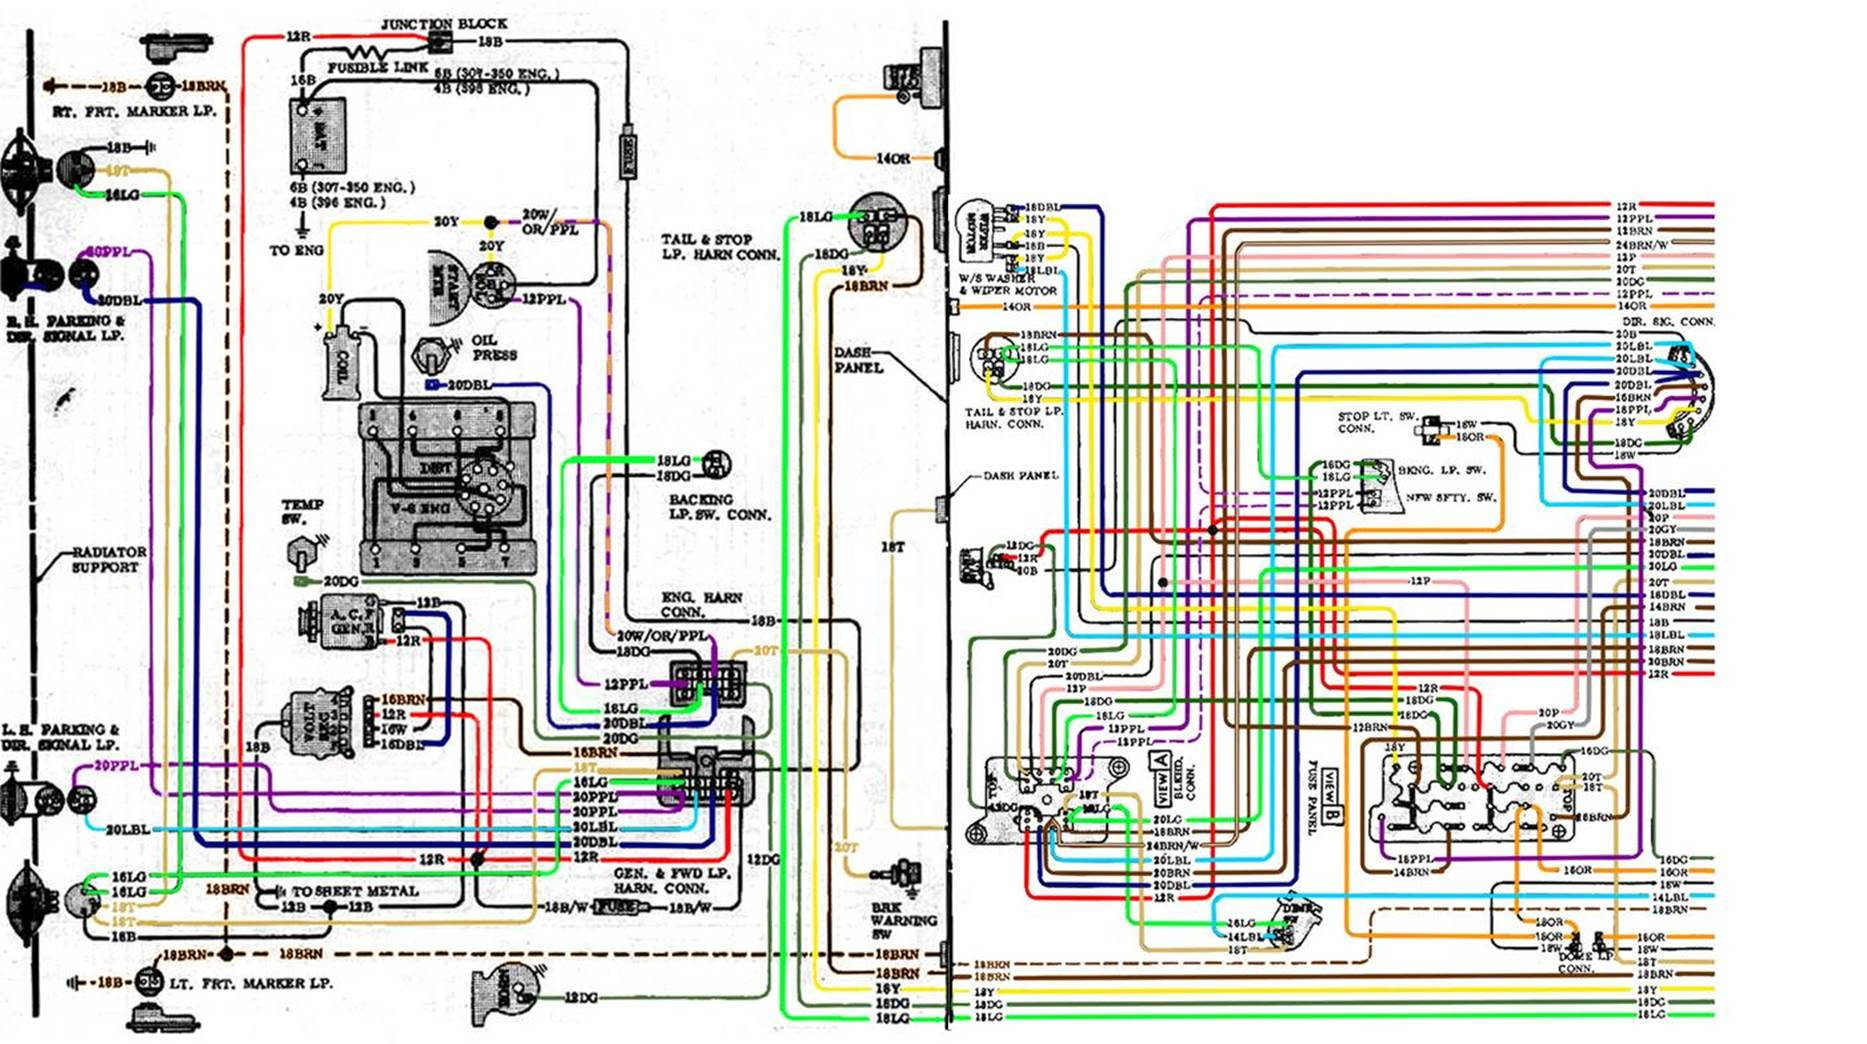 image002 78 chevy truck wiring diagram 86 chevy wiring diagram \u2022 free 1966 GTO Engine at panicattacktreatment.co